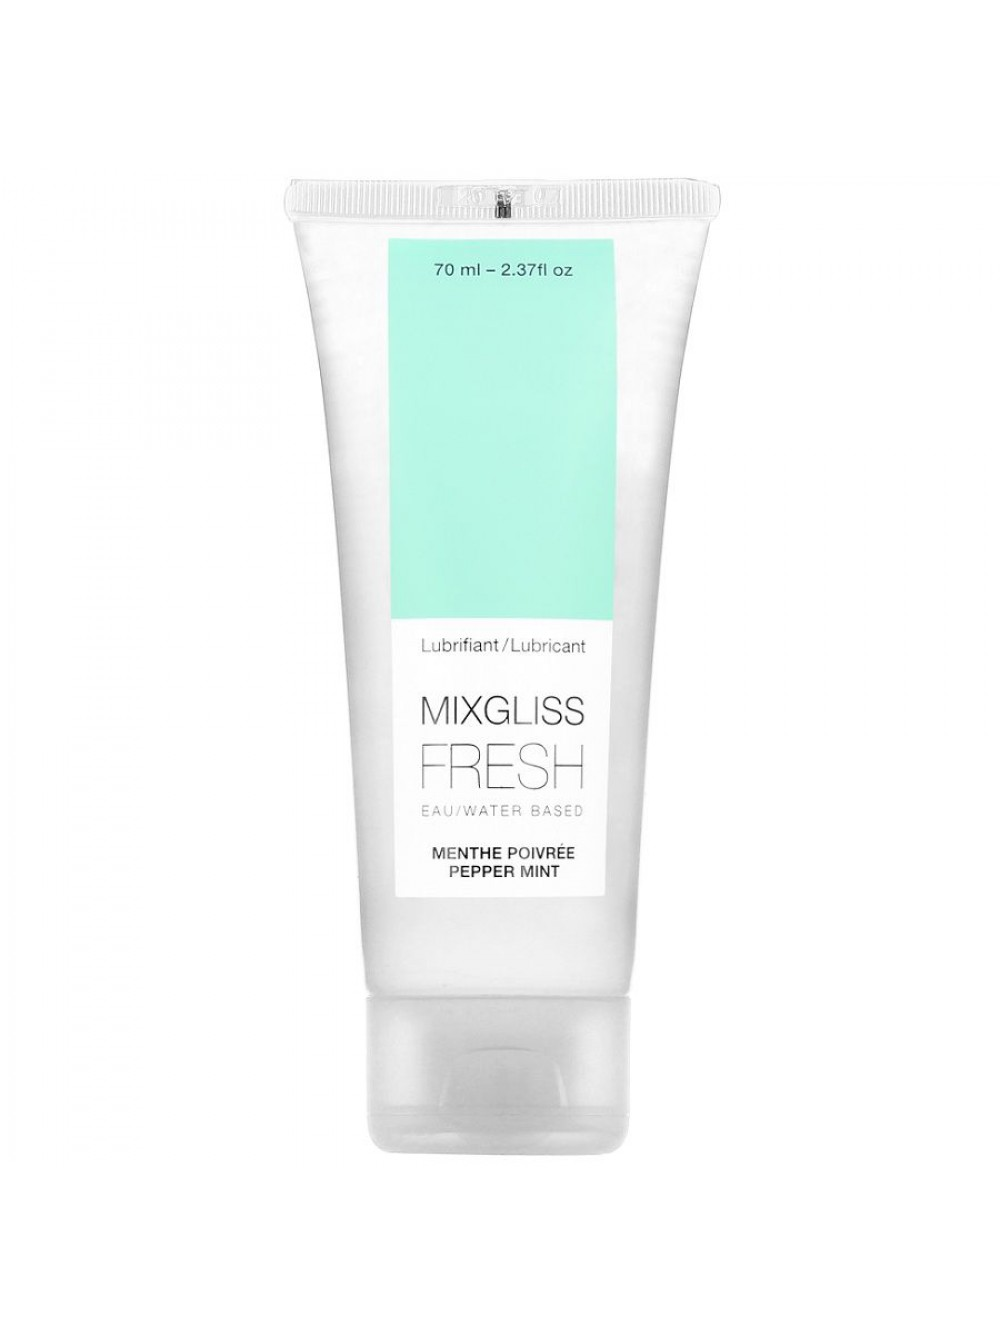 MIXGLISS WATER BASED FRESH PEPPERMINT 70ML